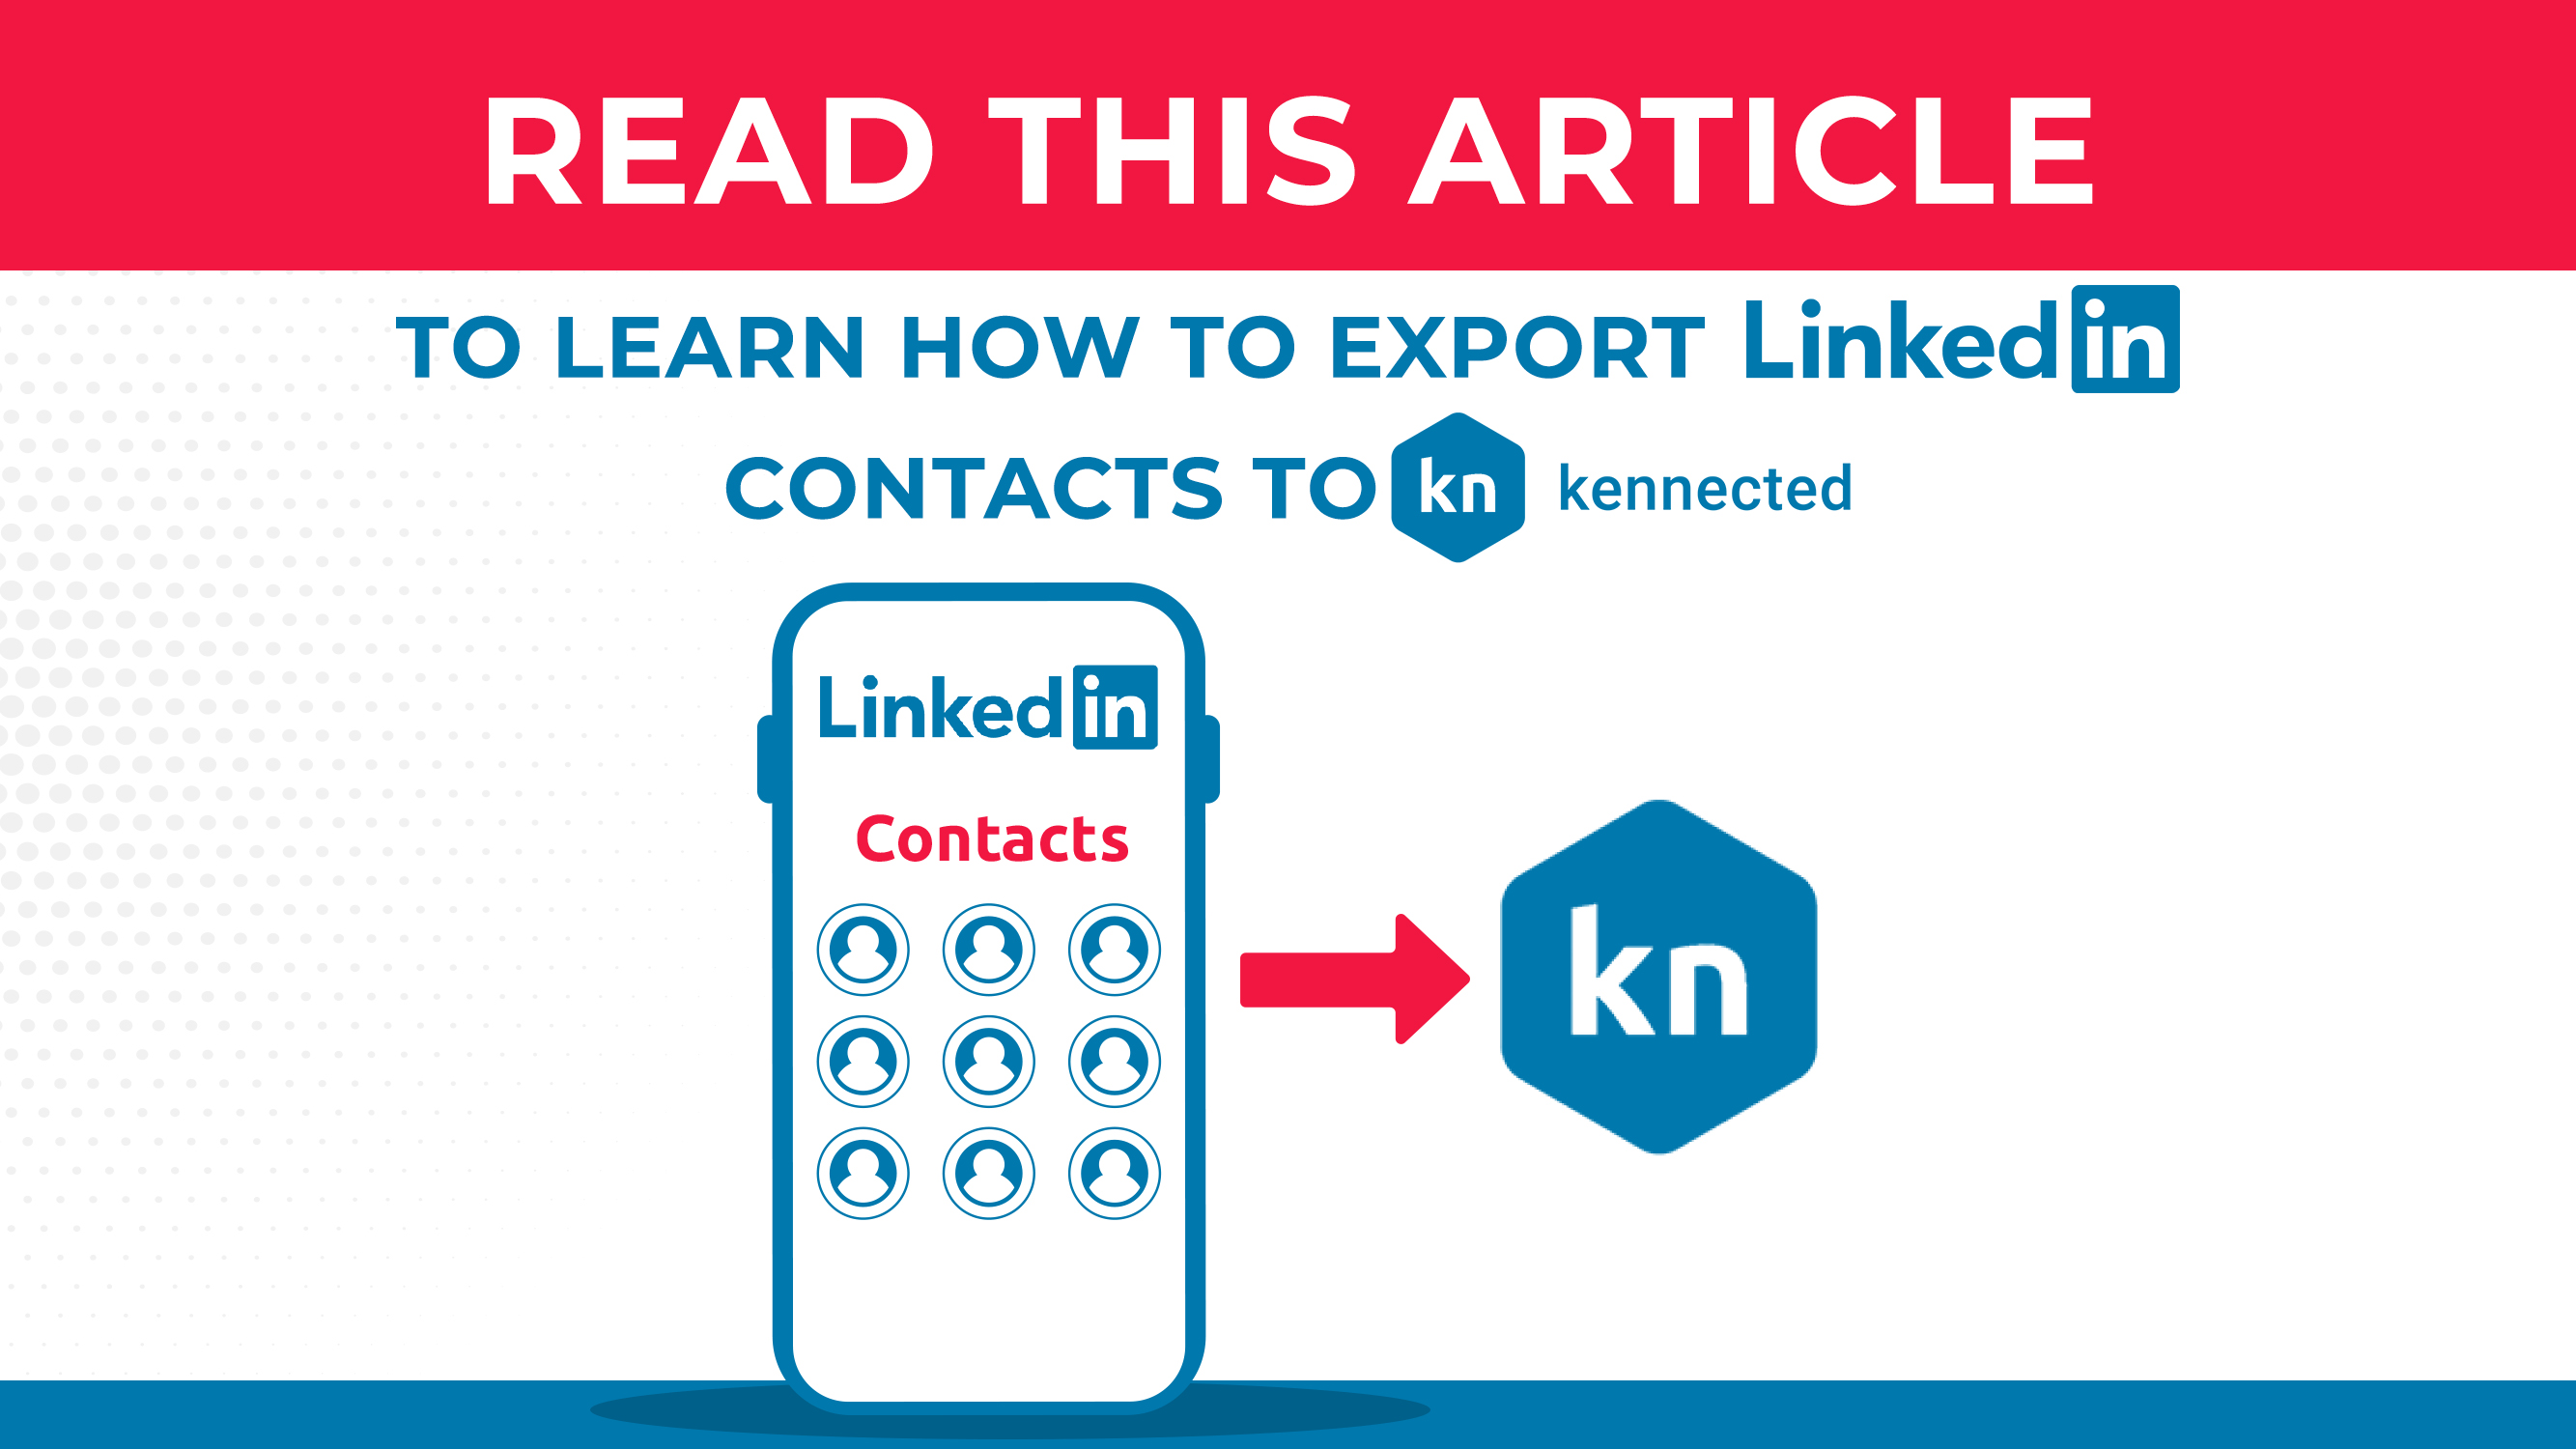 Leia este artigo para saber como exportar contatos do LinkedIn-Kennected